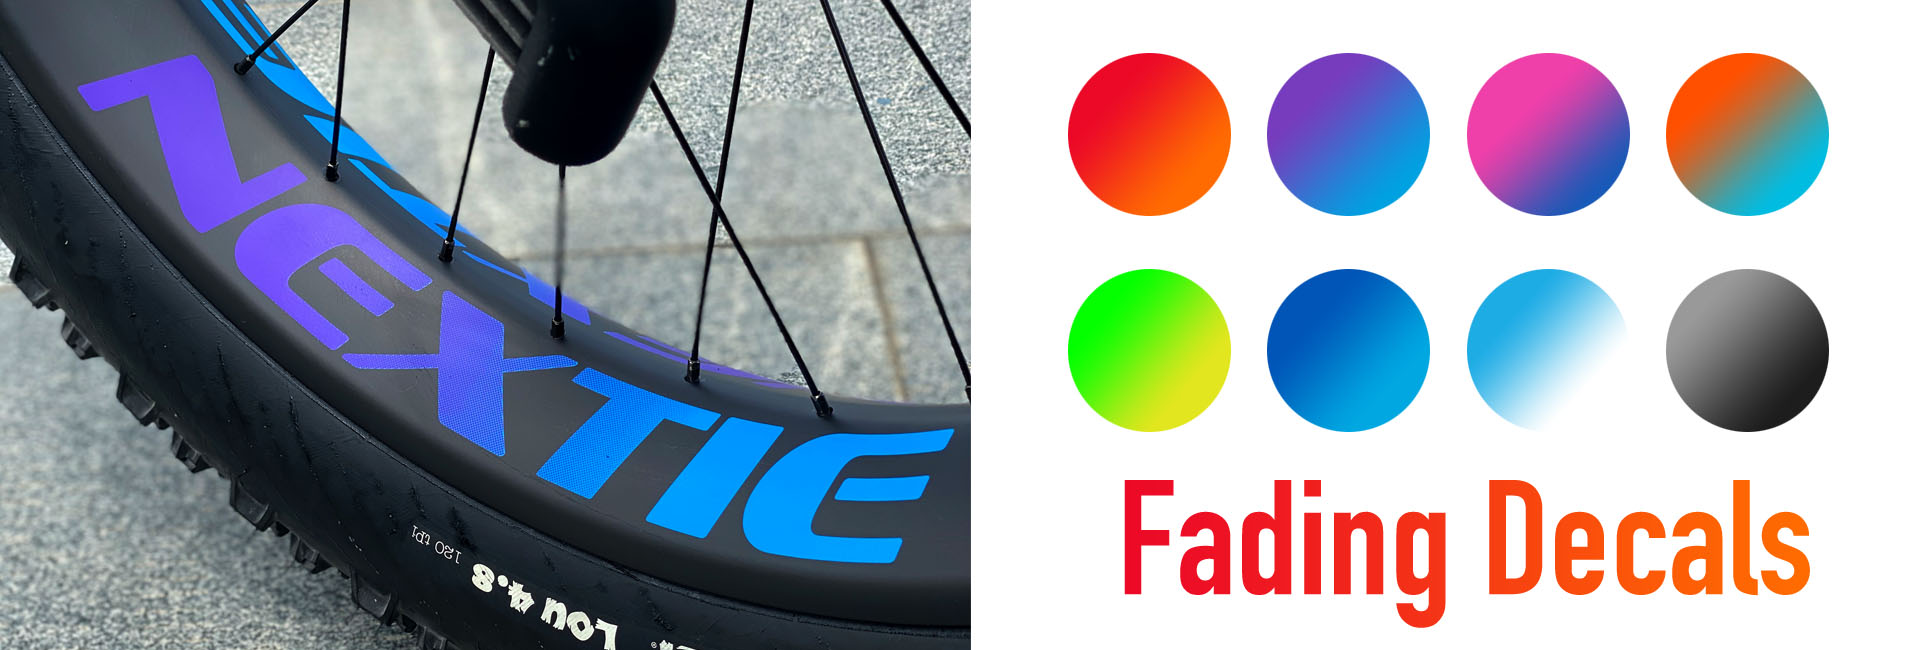 Fading-Color-Decals